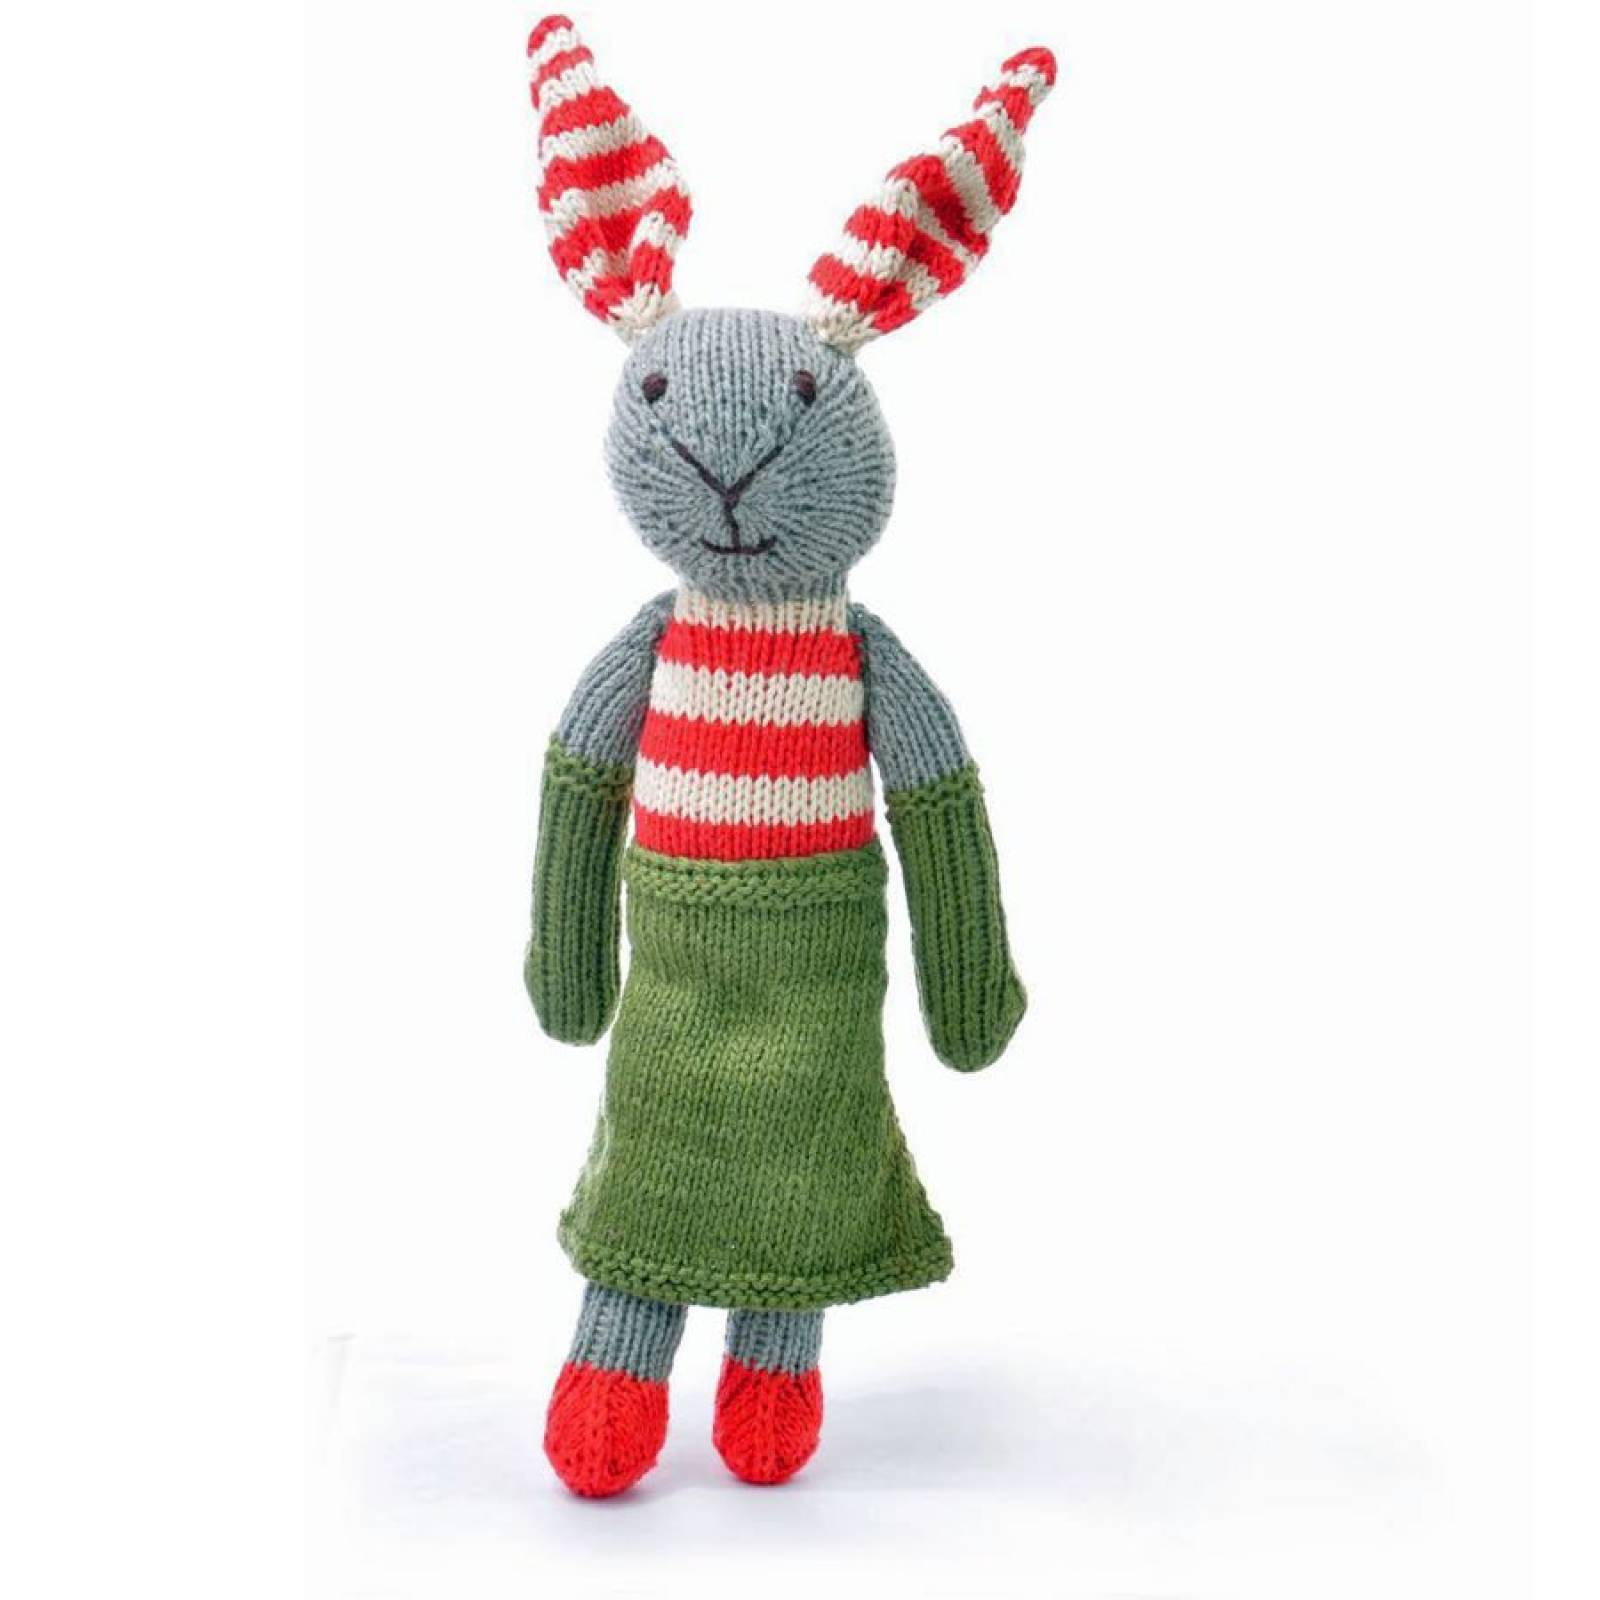 Rabbit in Green Skirt Hand Knitted Soft Toy Organic Cotton